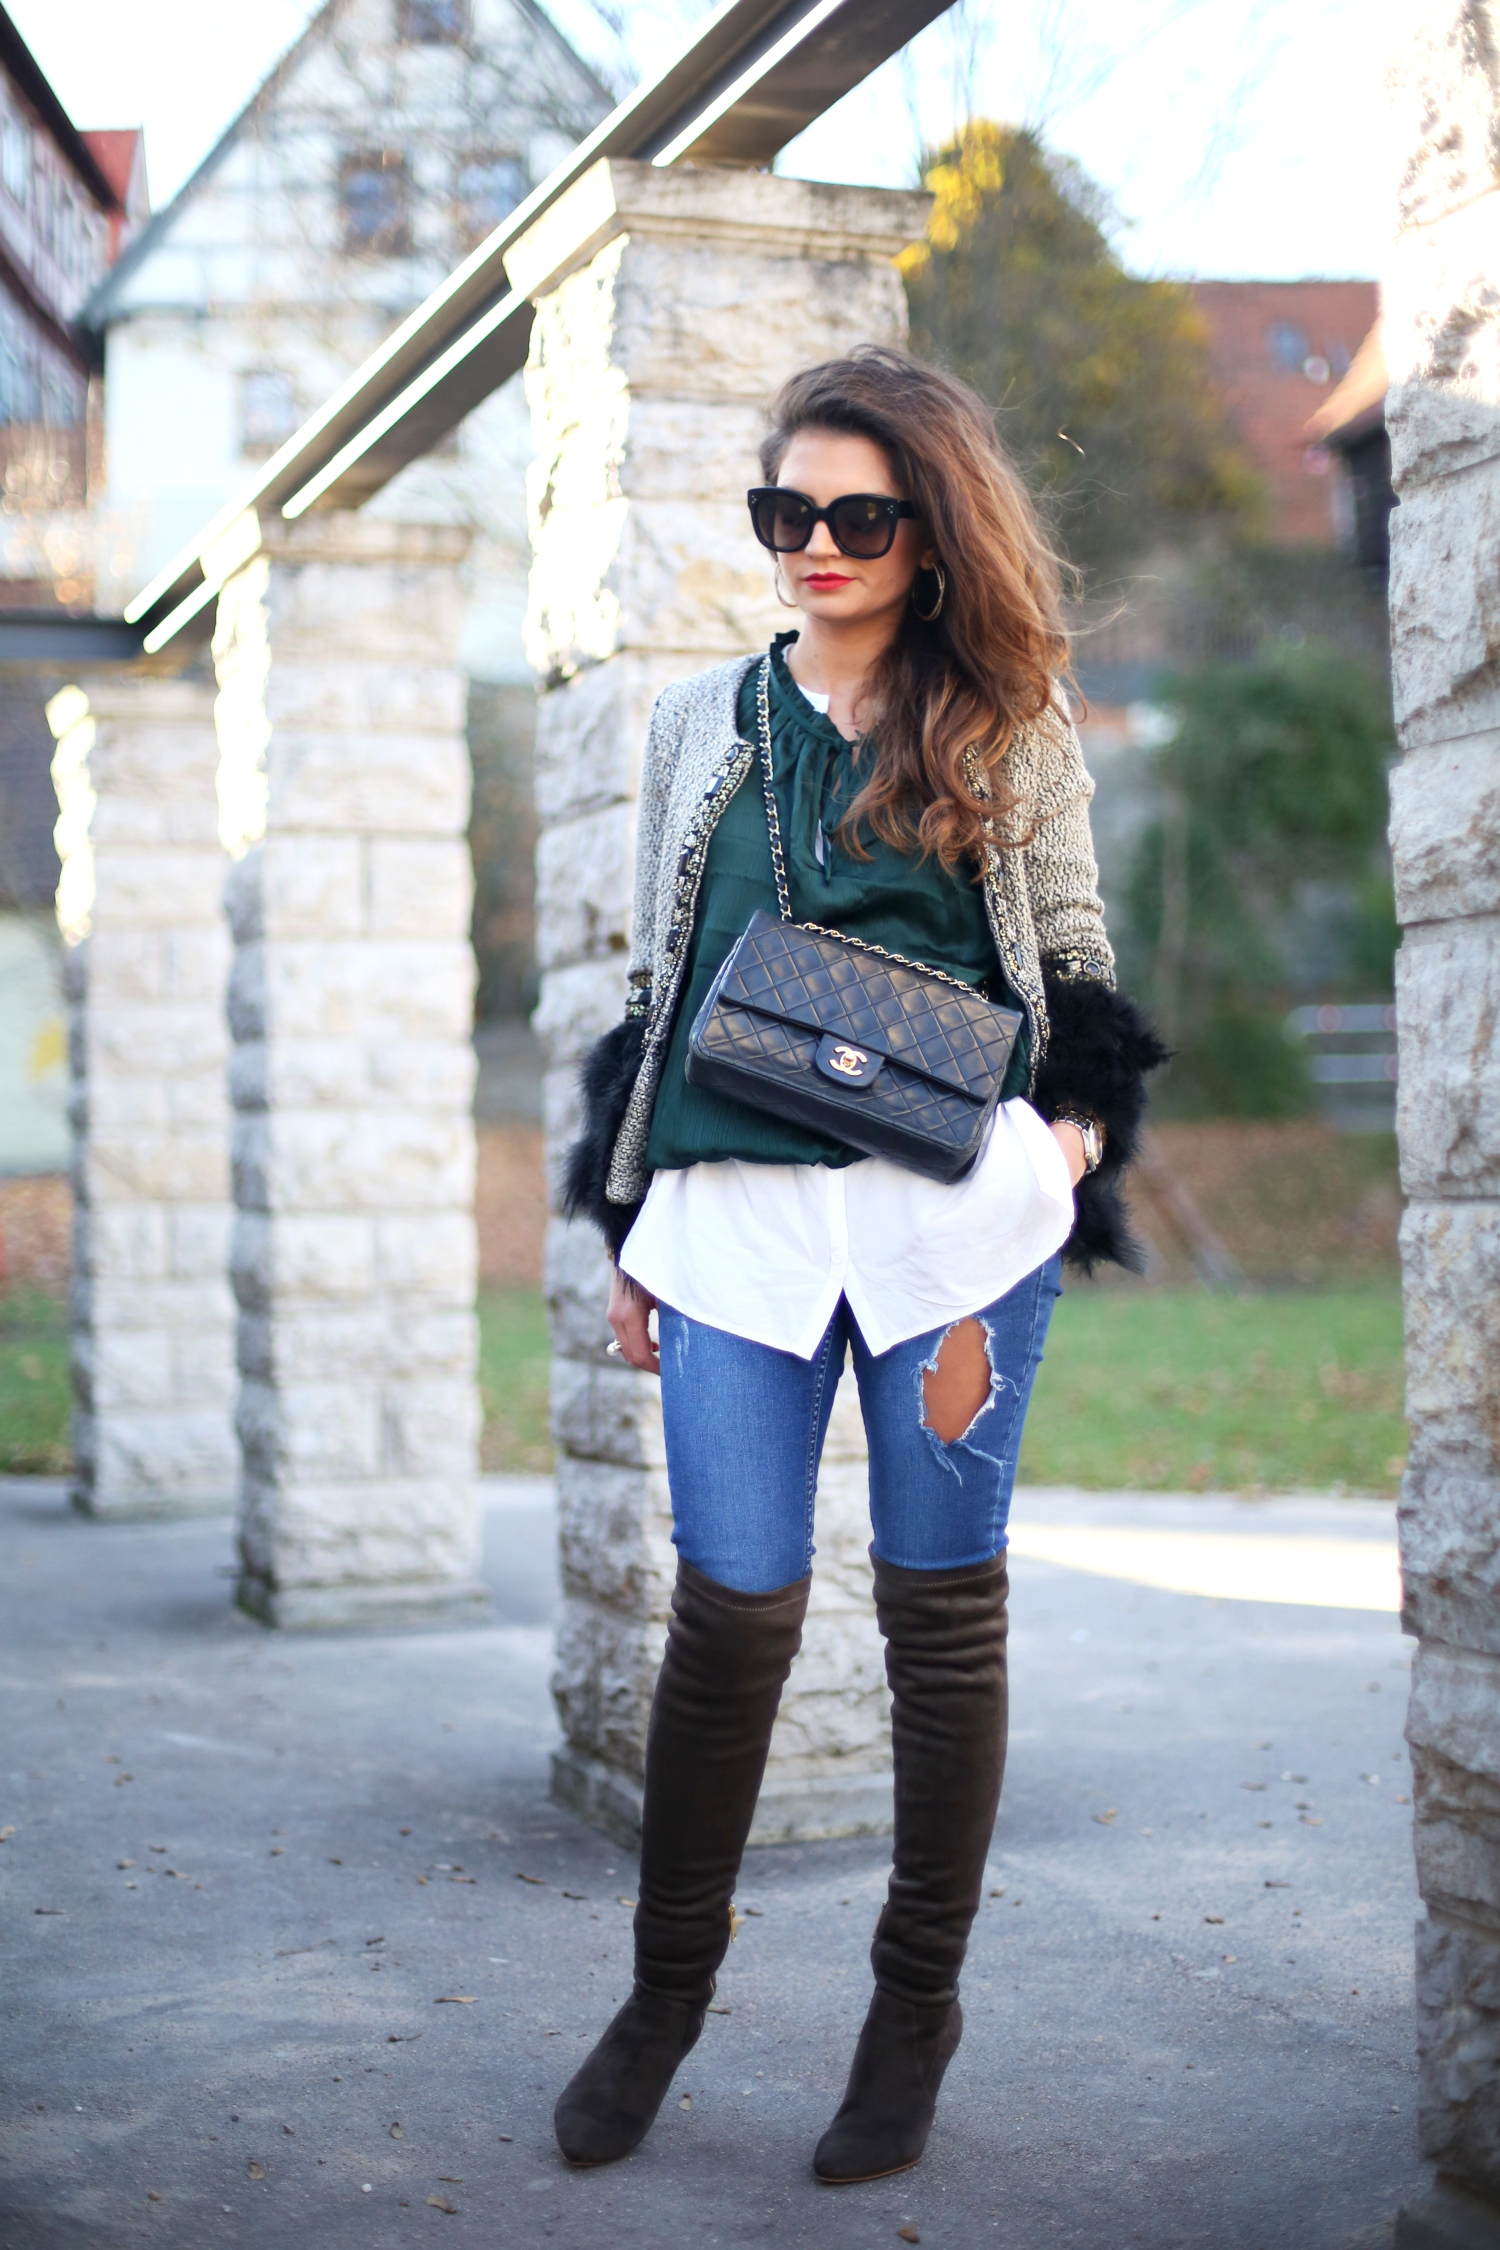 outfit-overknees-ripped-jeans-celine-sunglasses